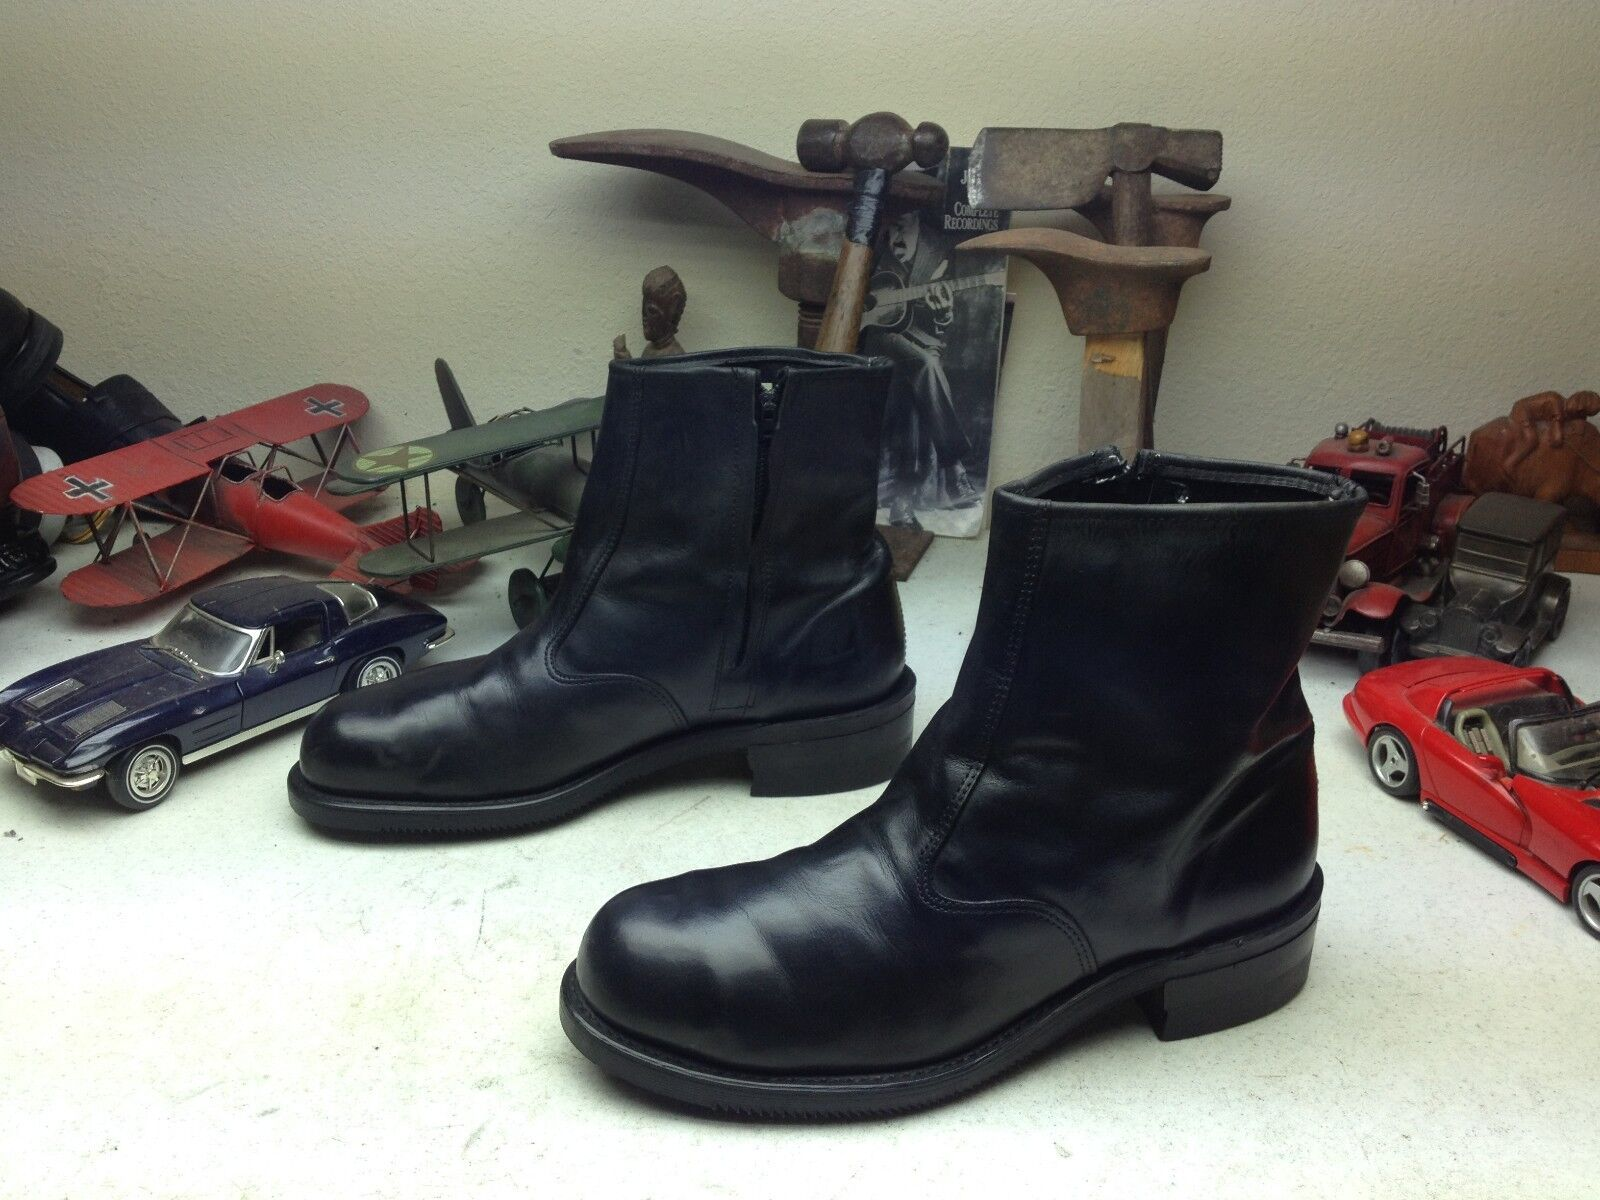 US VINTAGE DISTRESSED REV DOUBLE H BLACK LEATHER STEEL TOE MOTORCYCLE BOOTS 11 D